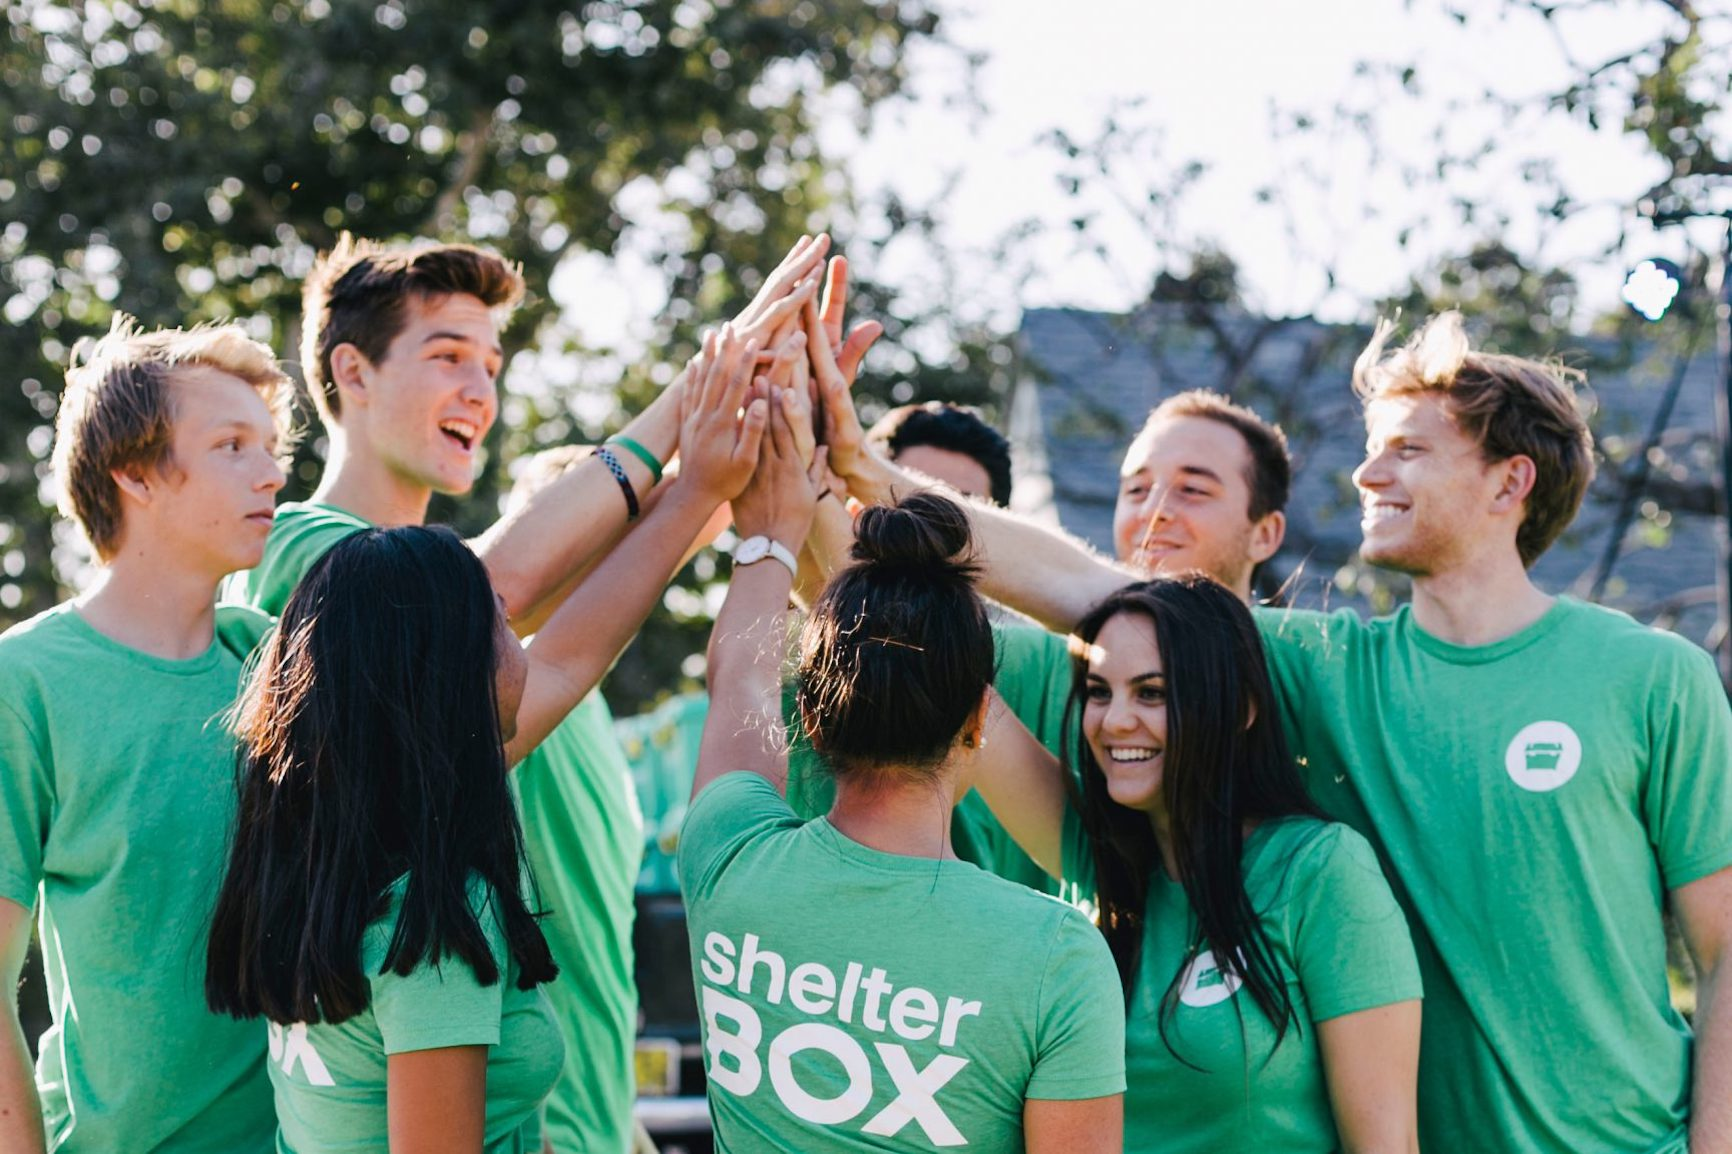 Shelterbox Volunteers